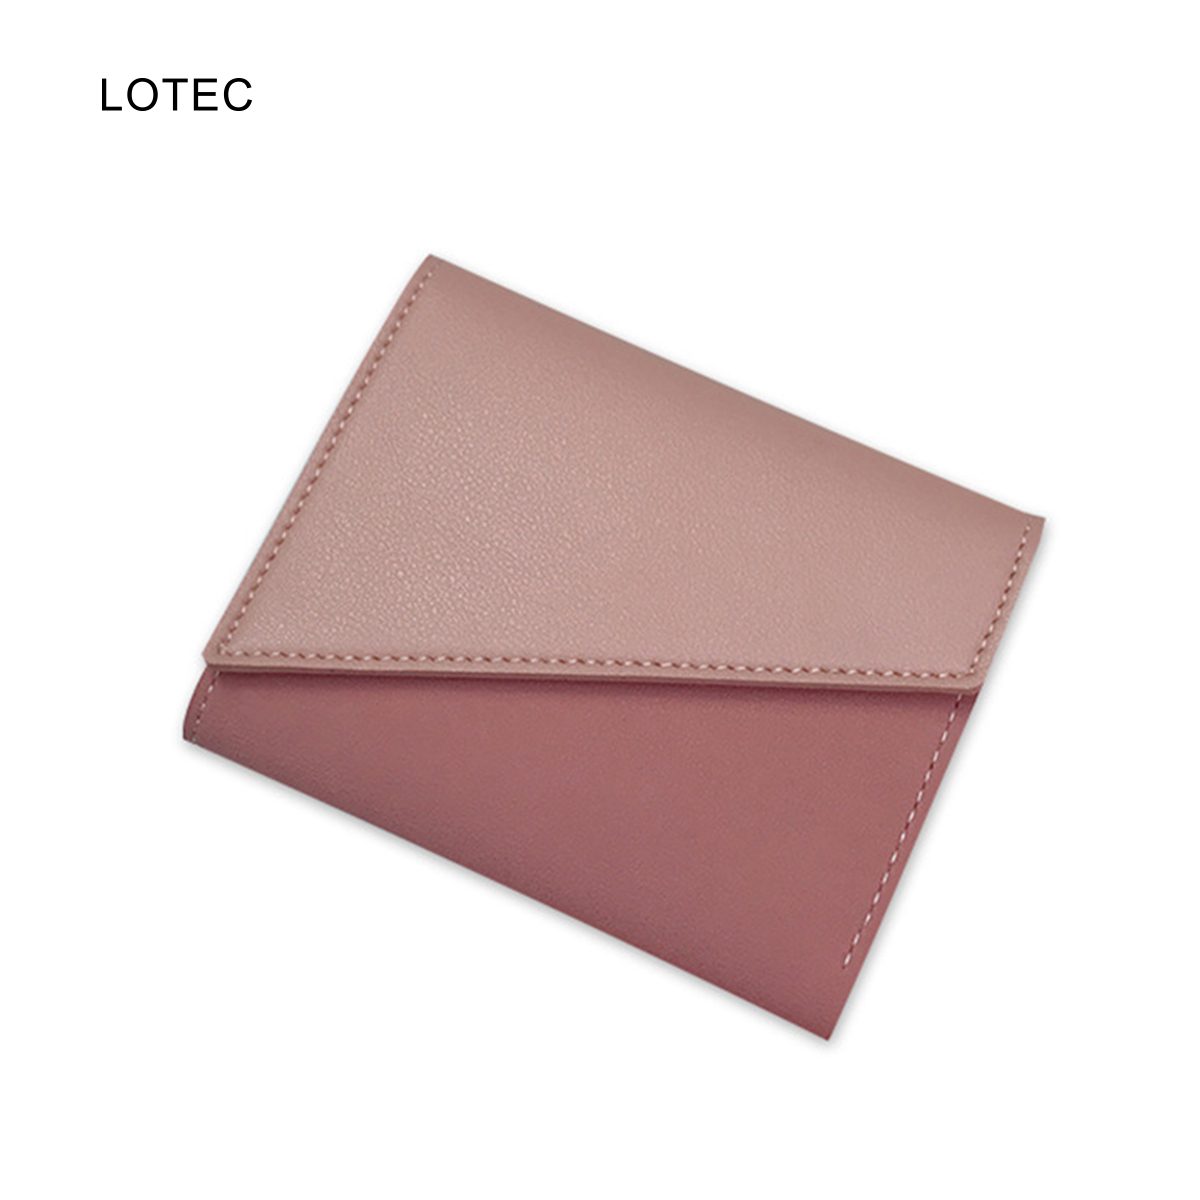 LOTEC Women Vintage PU Leather Mini Slim Wallet Case Female Short Trifold Thin Card Holder Minimalist Solid Coin Purse